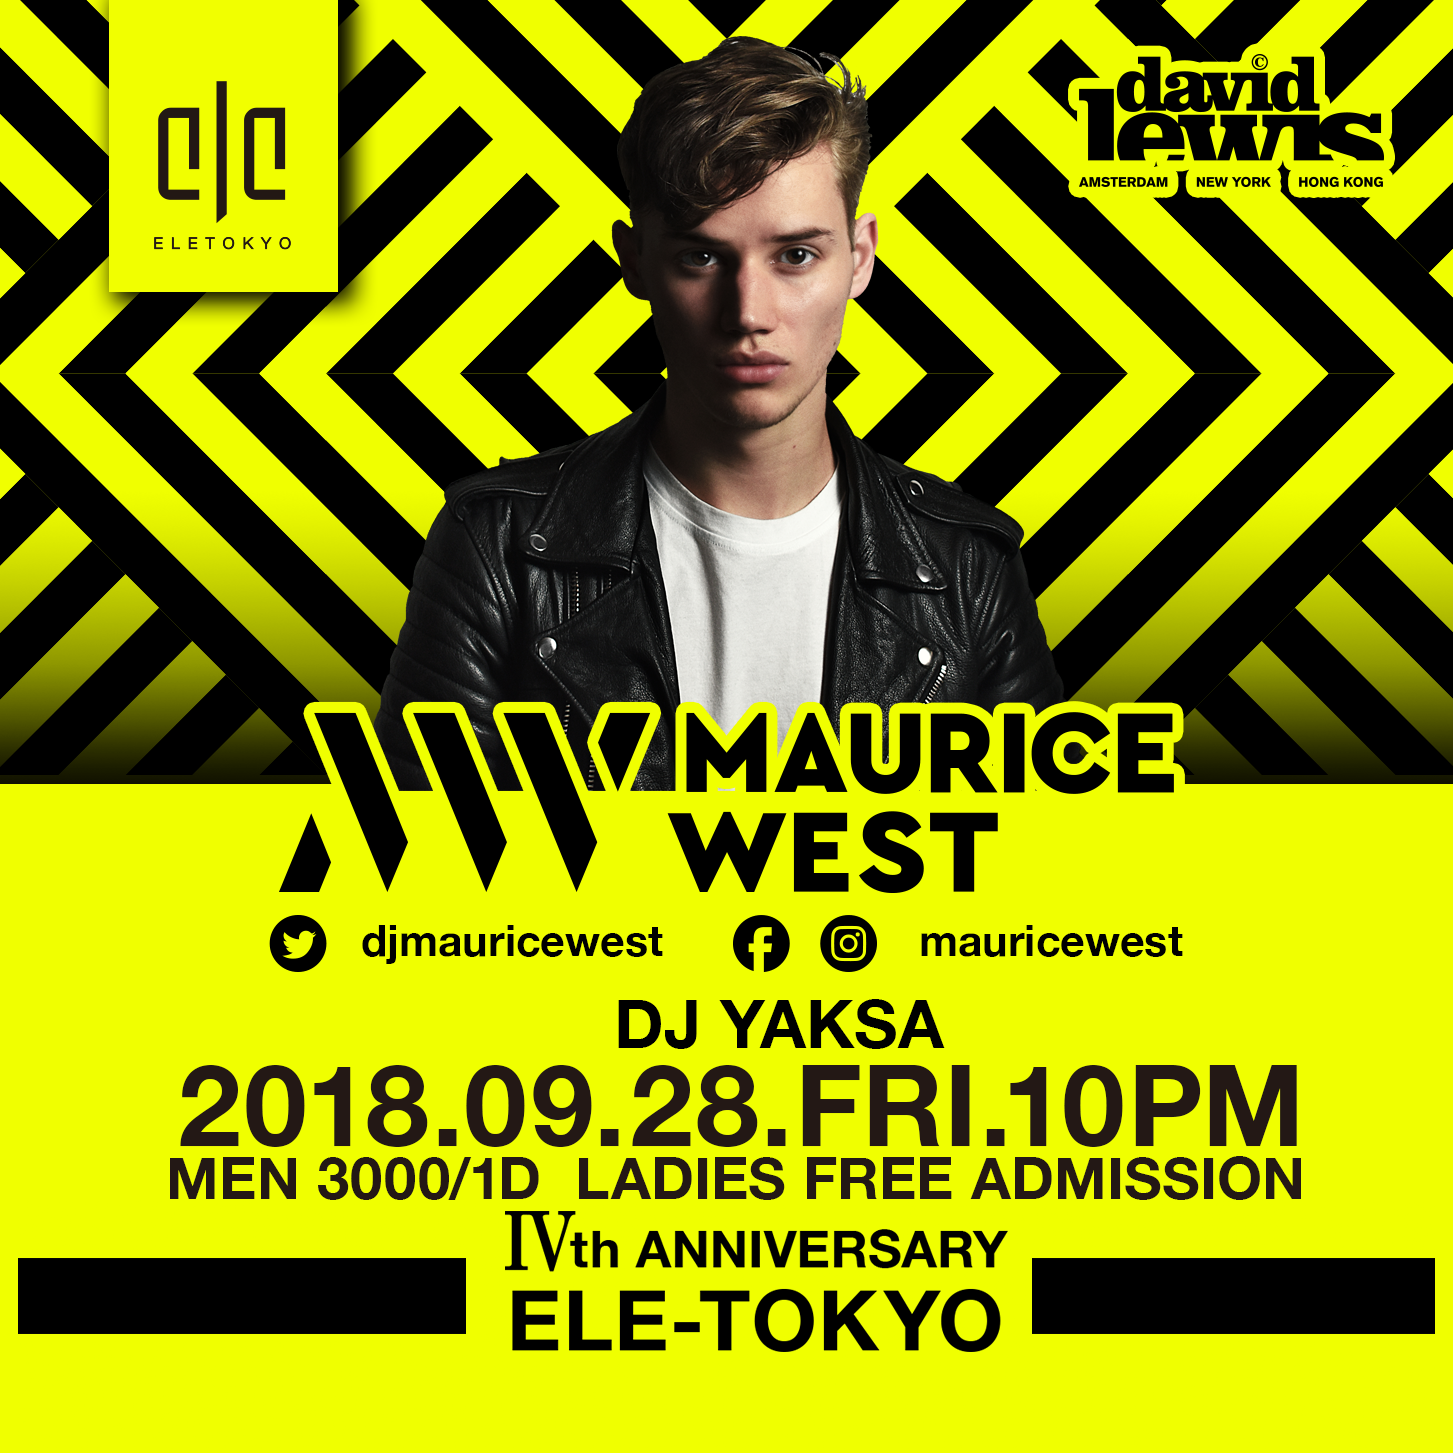 2018.09.28 MAURICE WEST